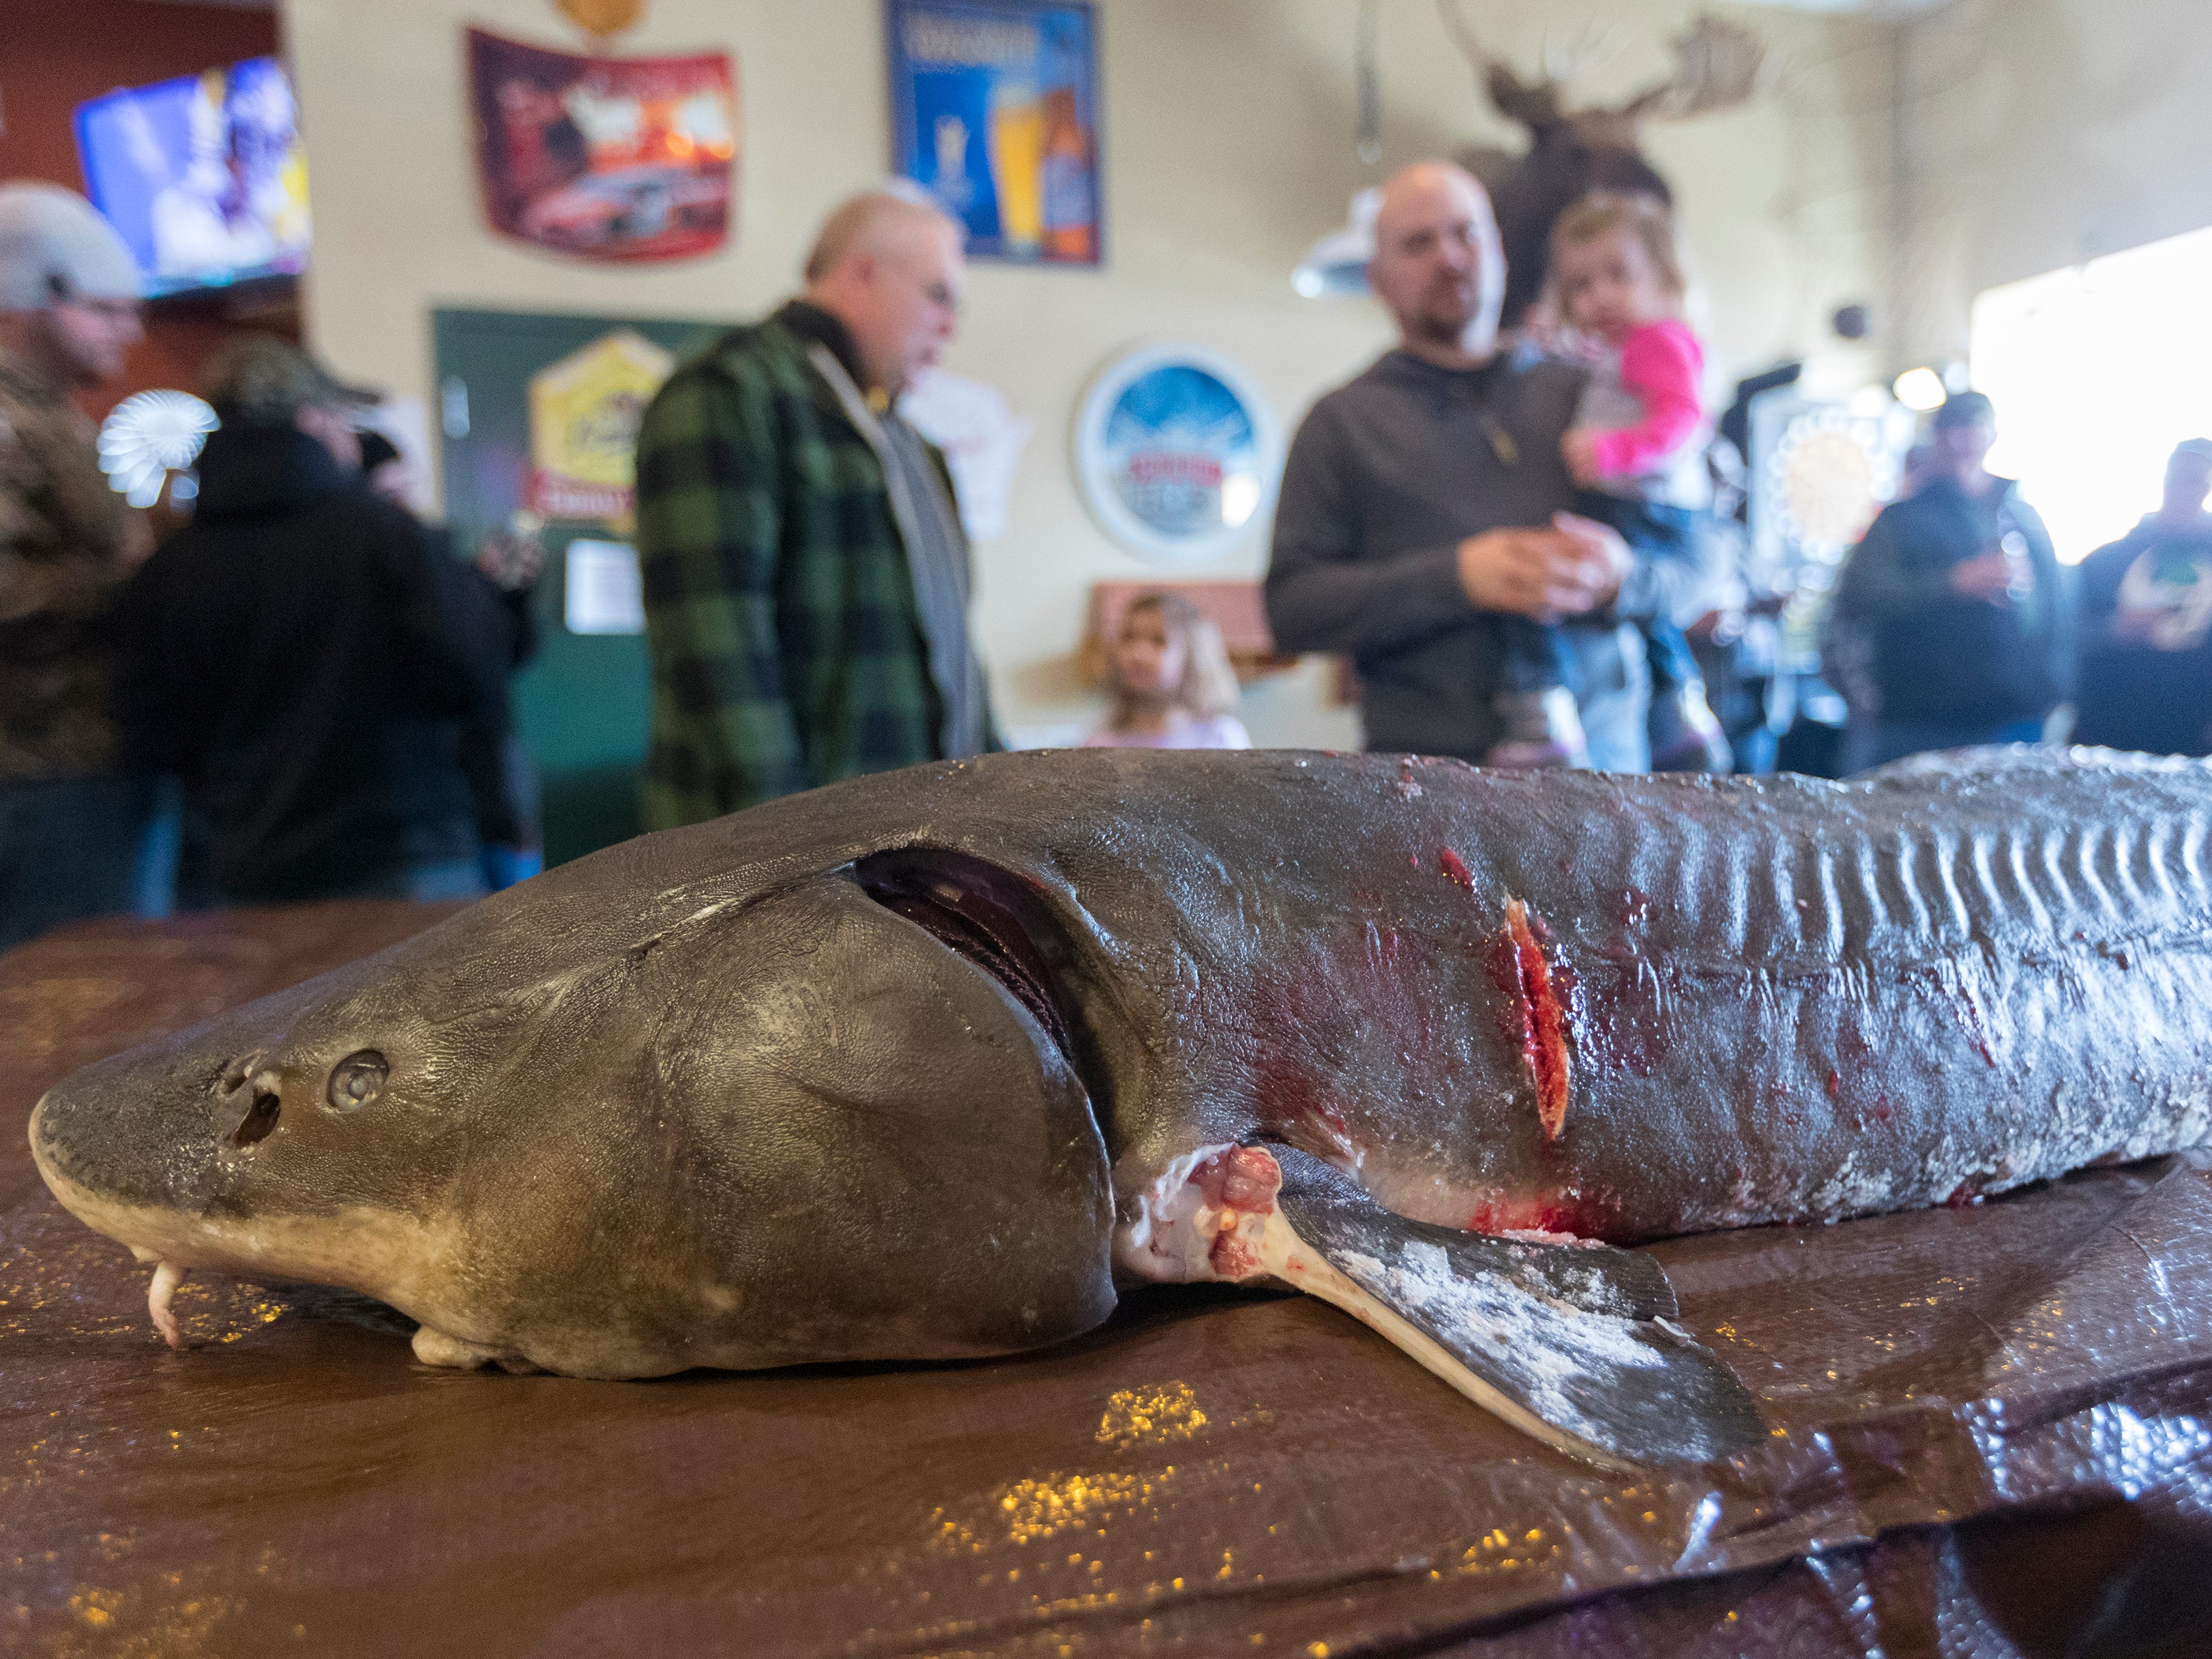 Sturgeon are displayed on a pool table during the opening day of sturgeon spearing Saturday at Critter's in Winneconne, Wis.